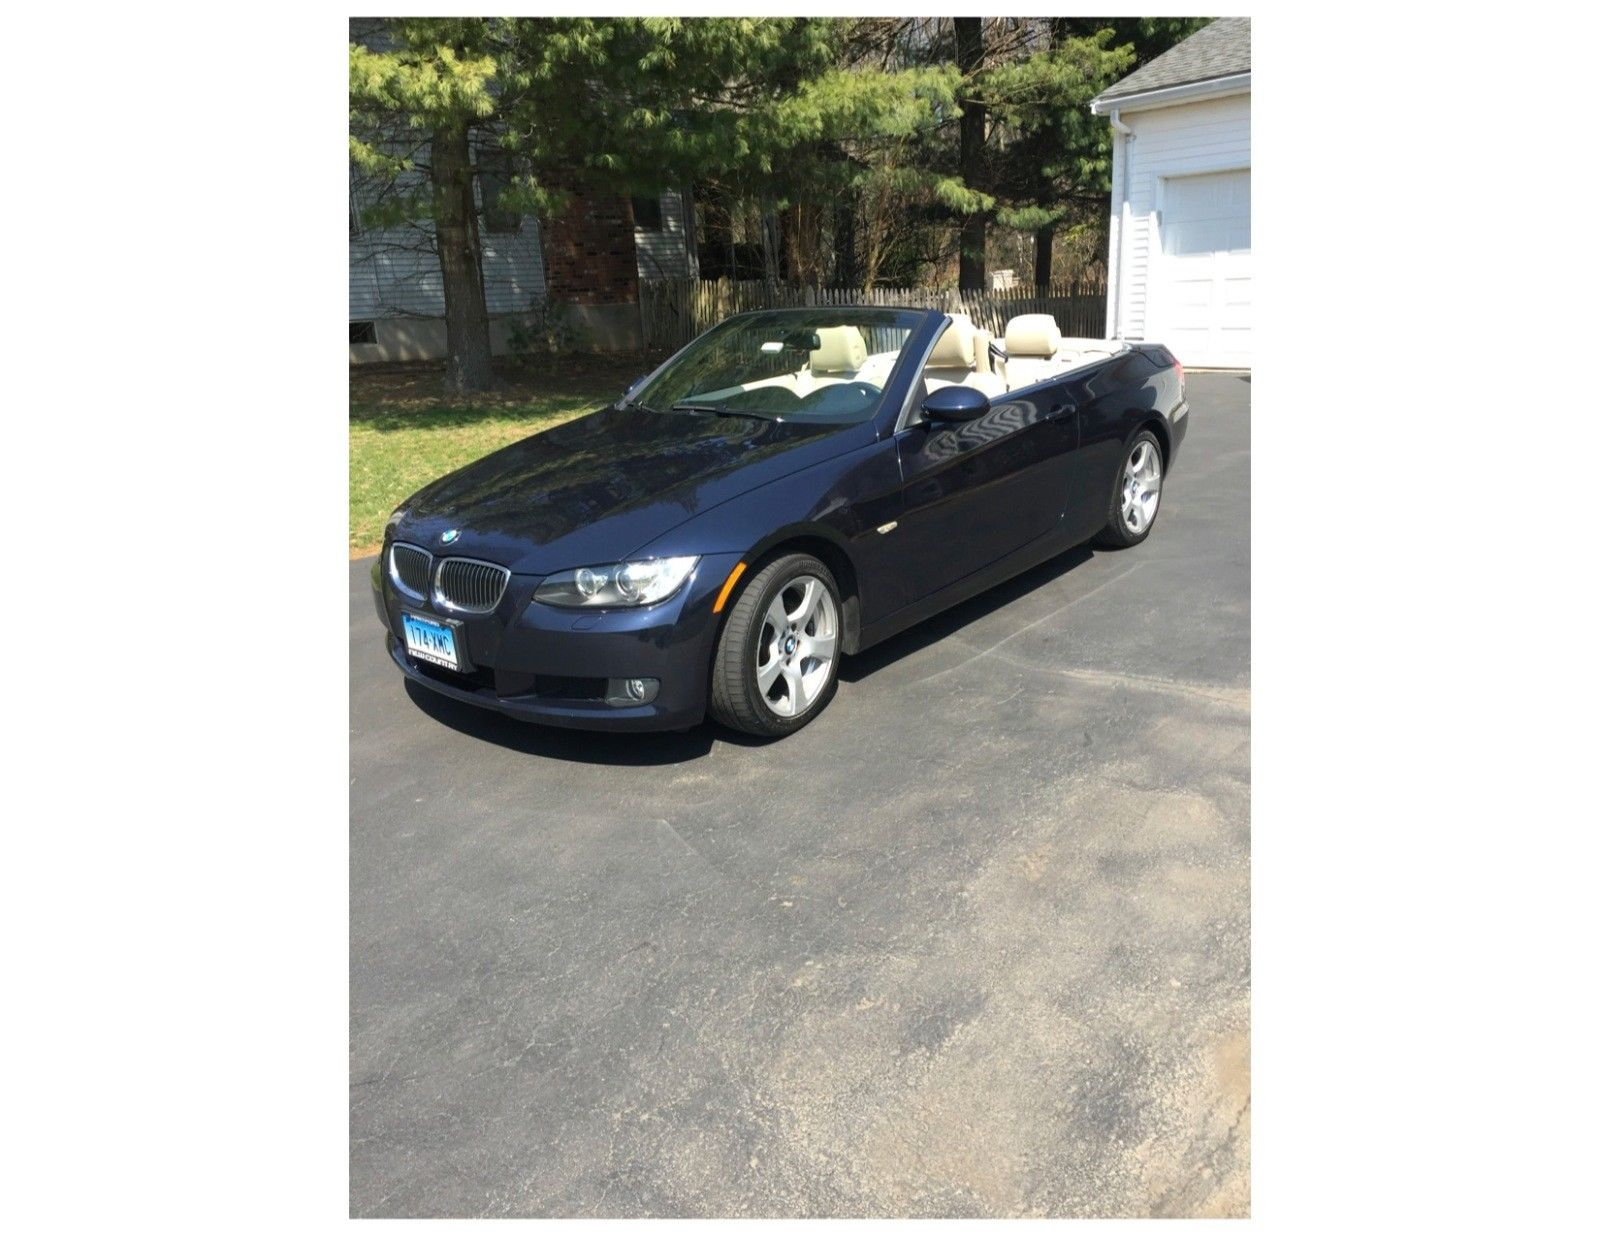 Awesome 2009 Bmw 3 Series Hardtop Covertible 328i